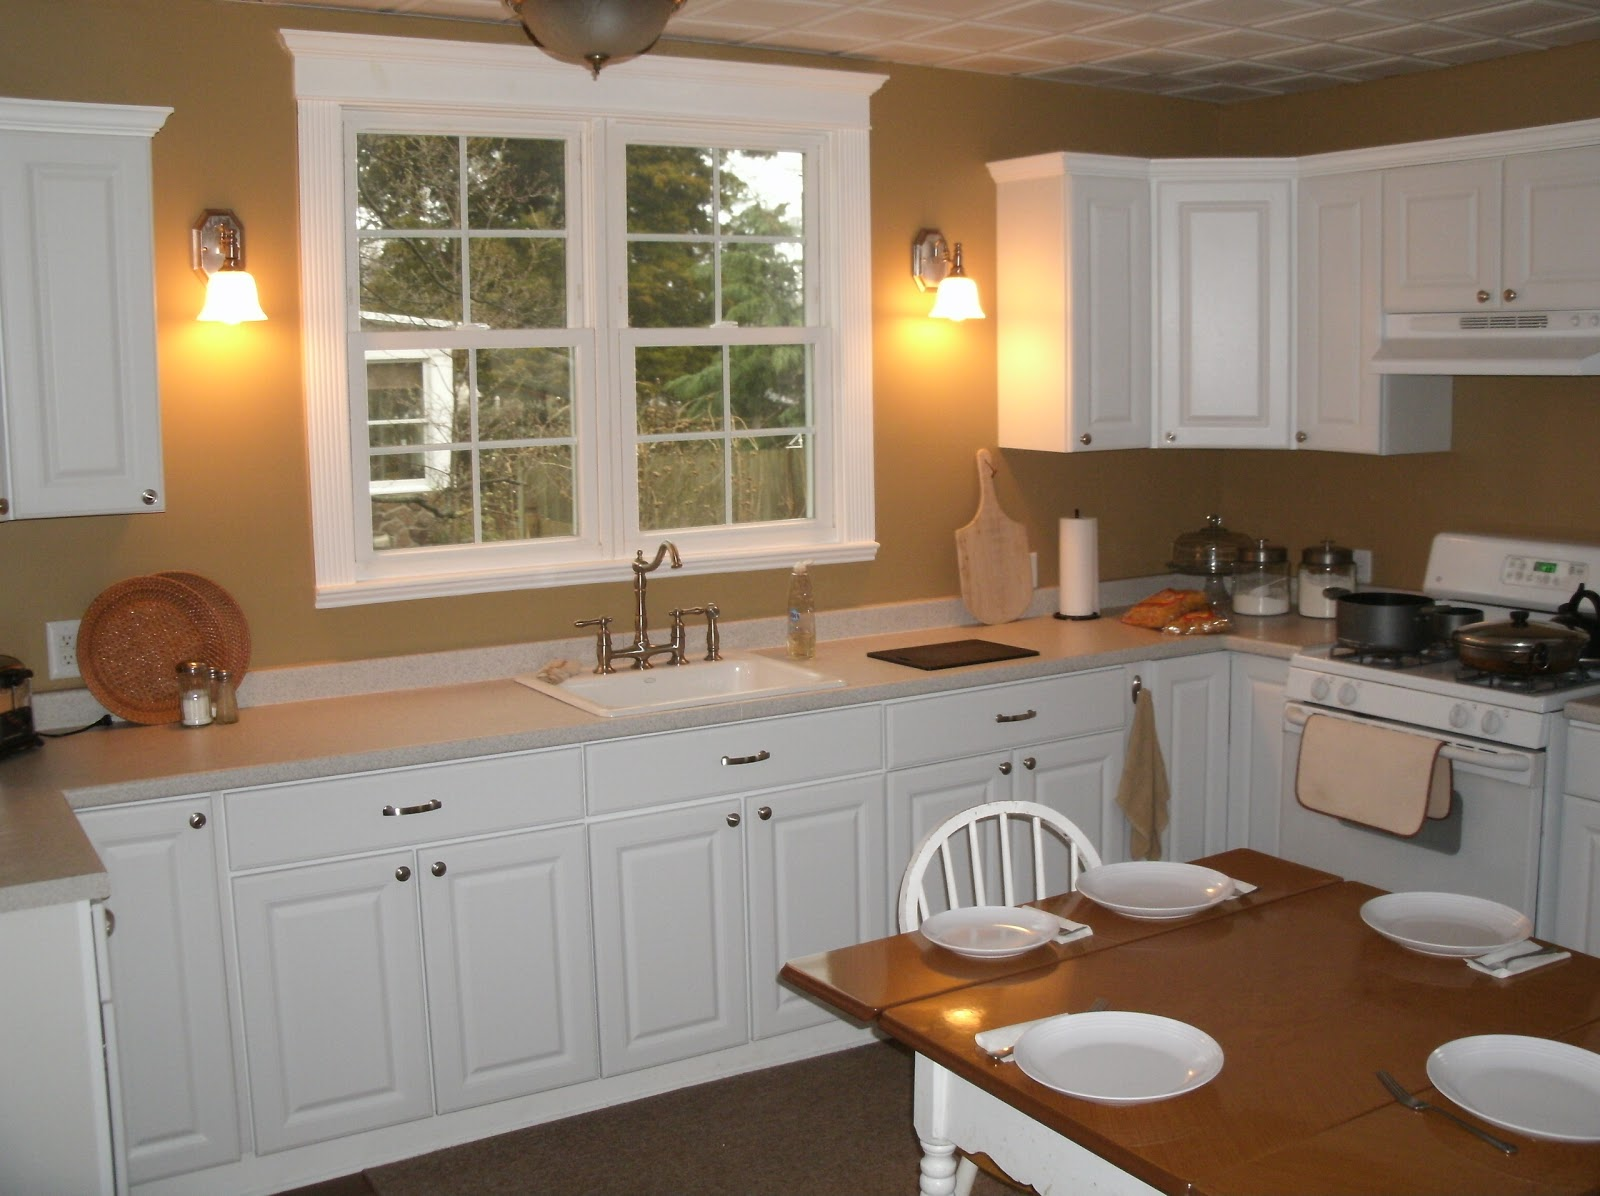 Complete Home Remodeling and Construction 856-956-6425 ...